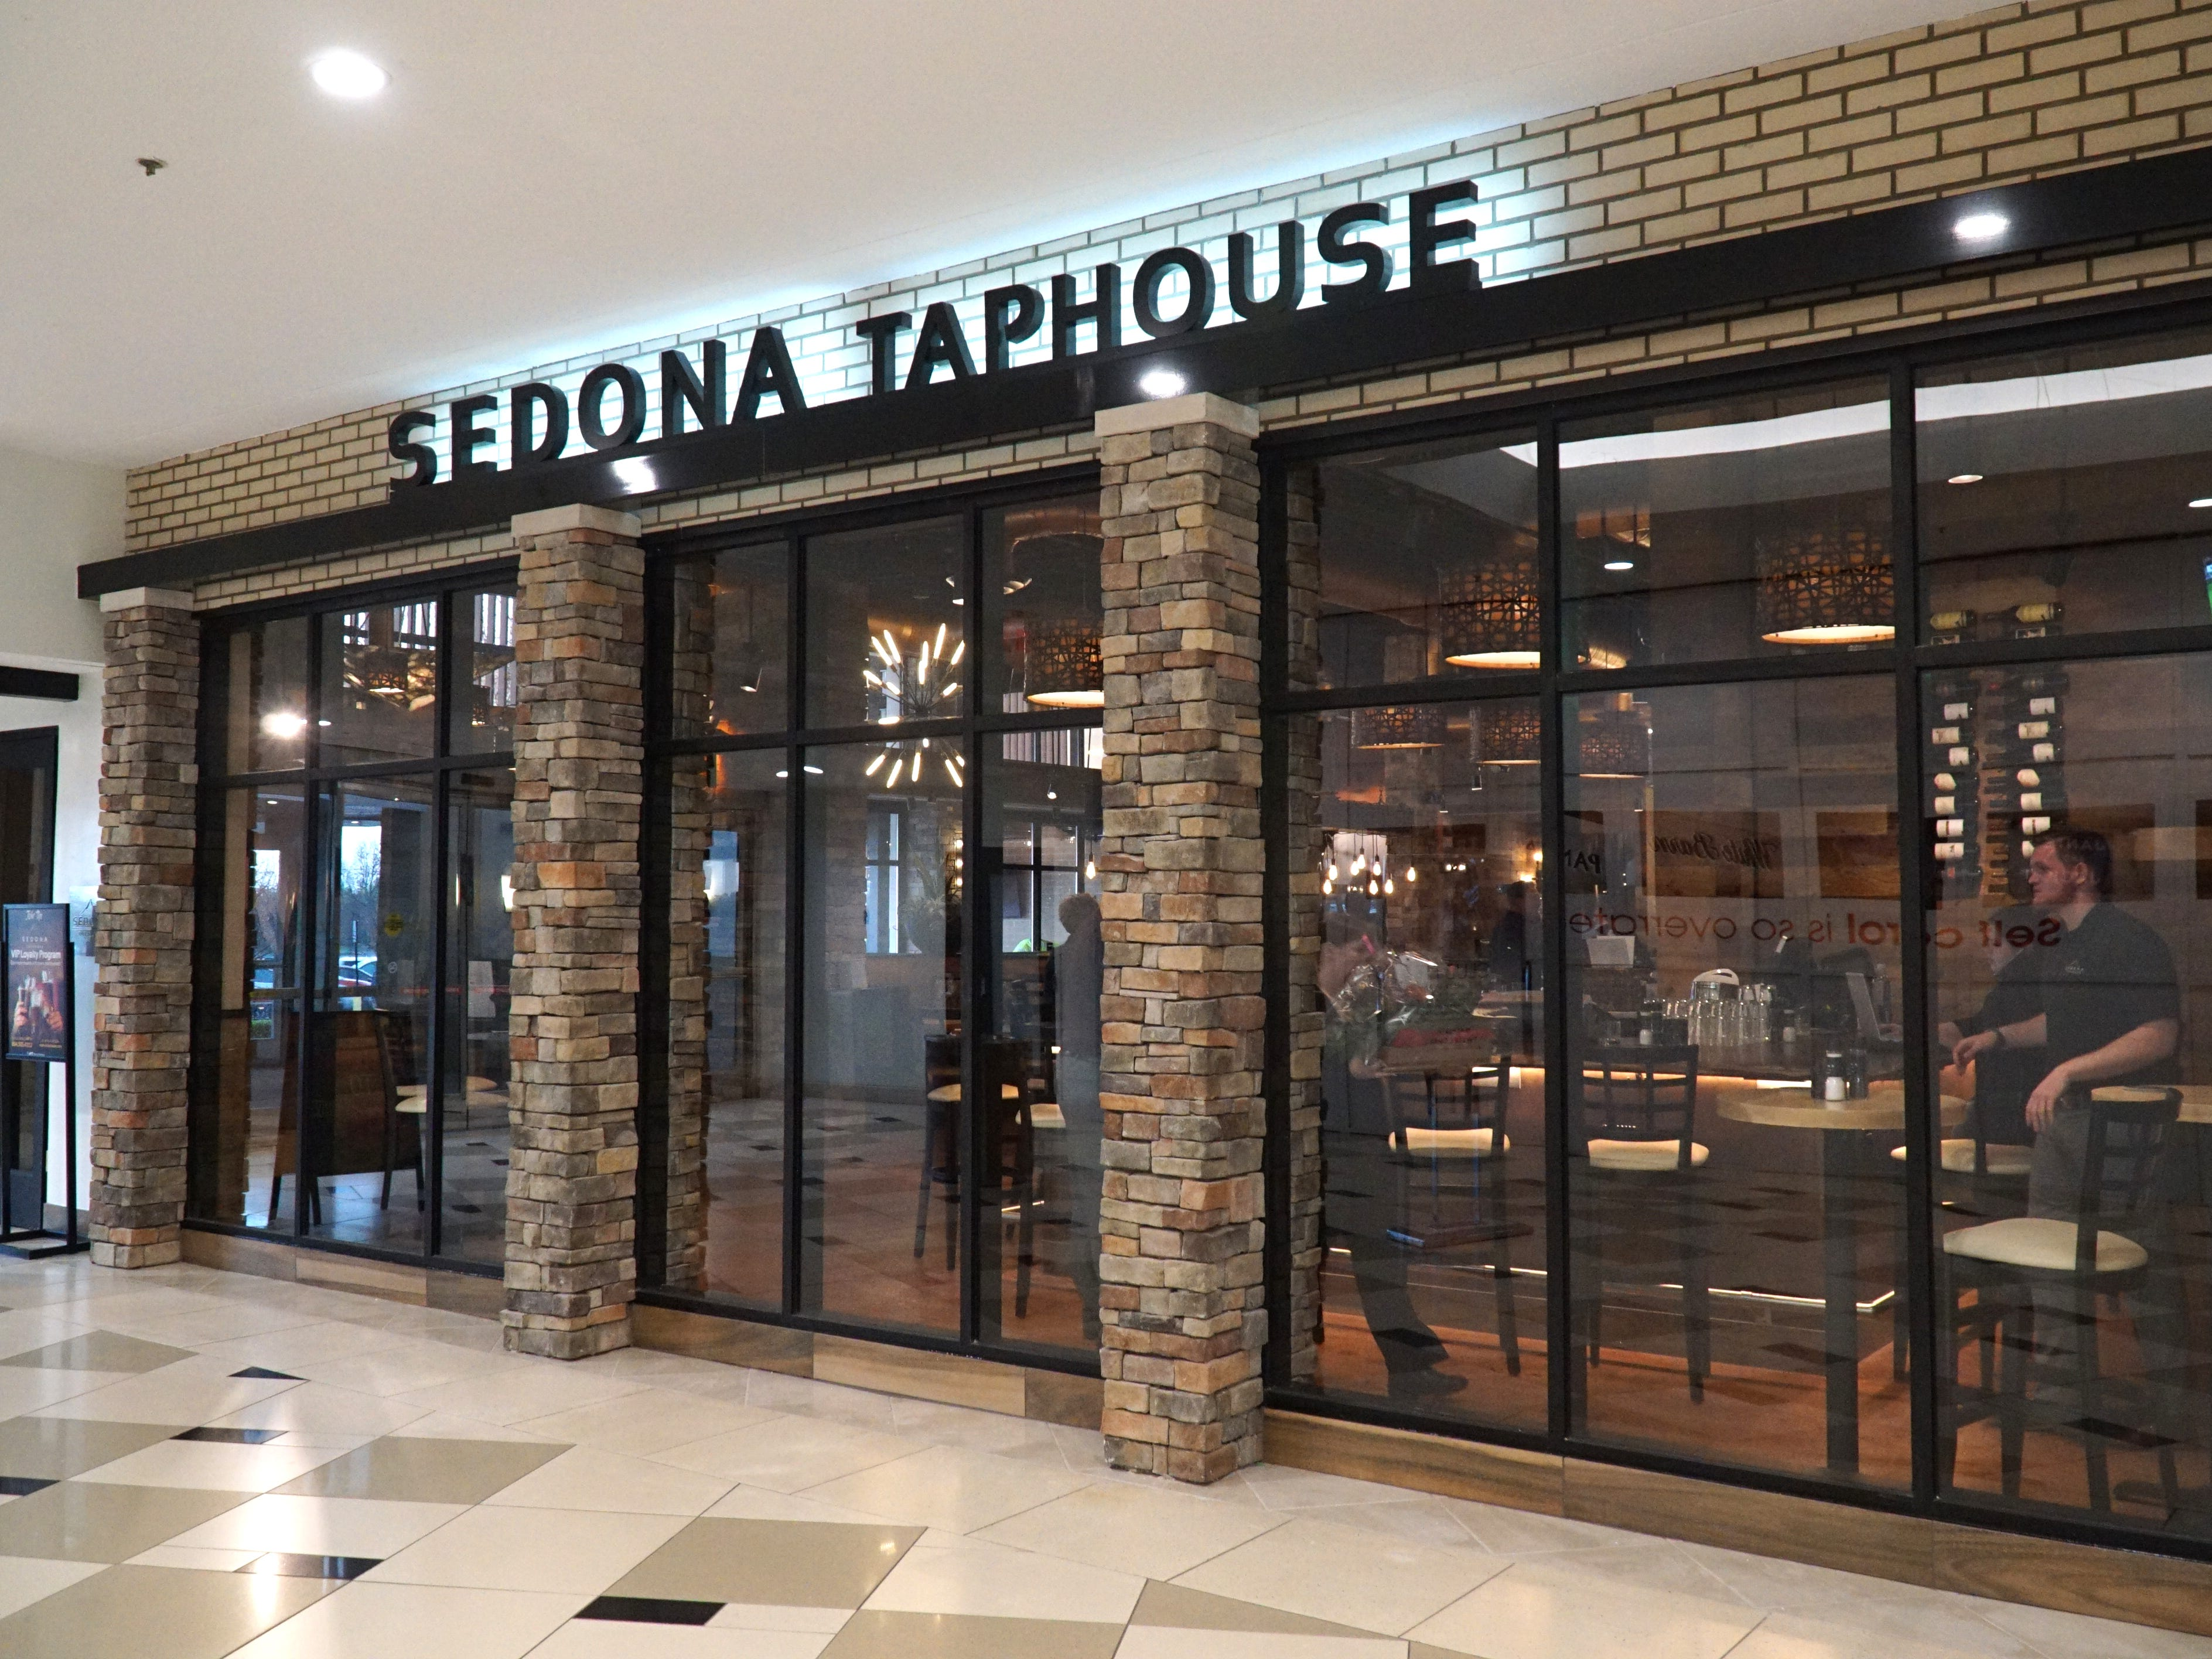 The Sedona Taphouse at Novi's Twelve Oaks Mall. The pub and restaurant is located on the upper level near J.C. Penny's.